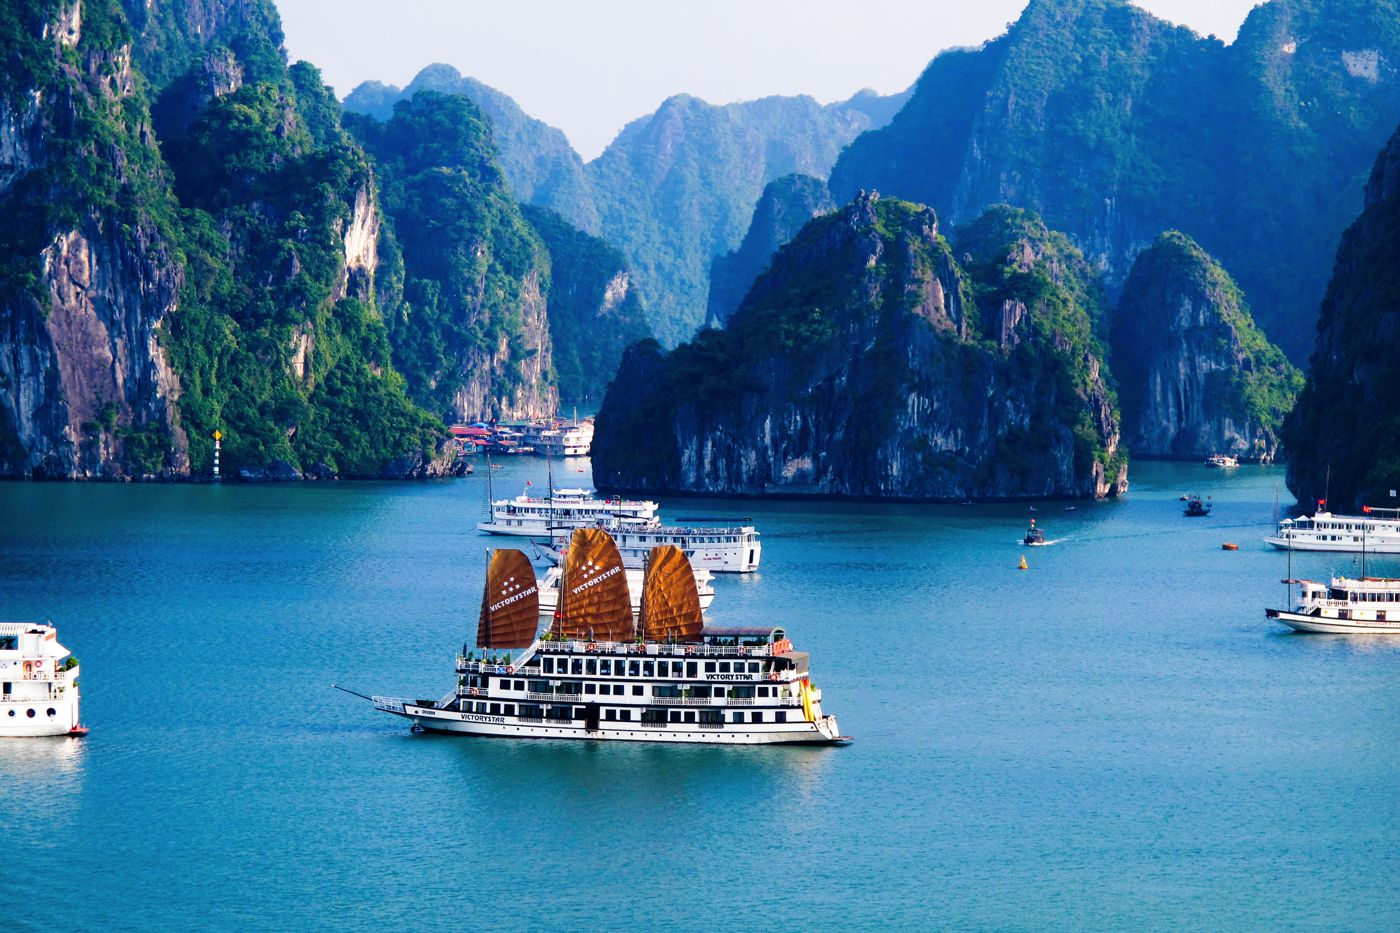 http://handluggageonly.co.uk/wp-content/uploads/2014/10/HaLong-Bay.jpg